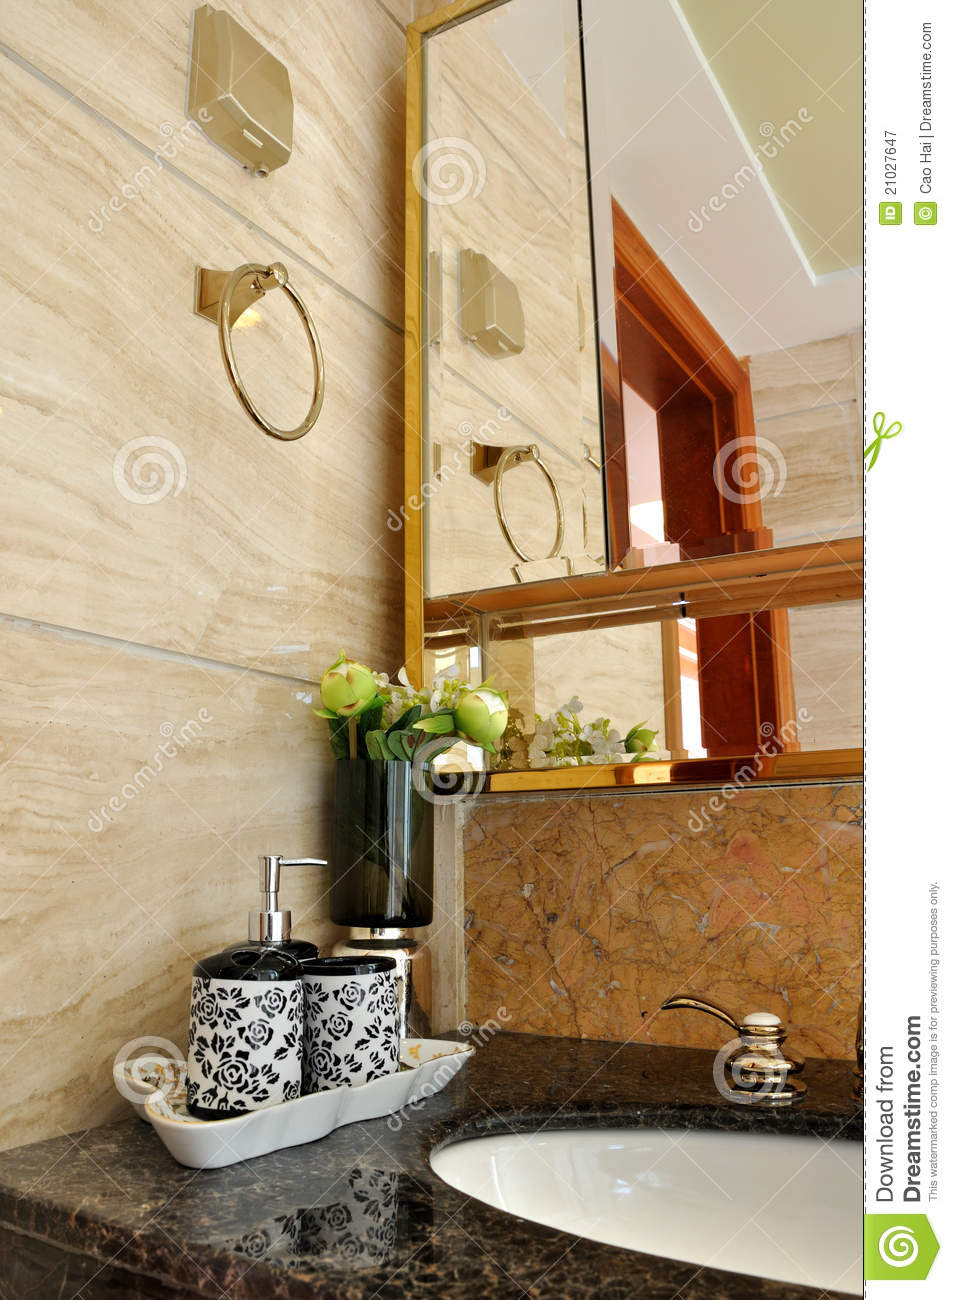 Part Of Washroom Interior Royalty Free Stock Photography